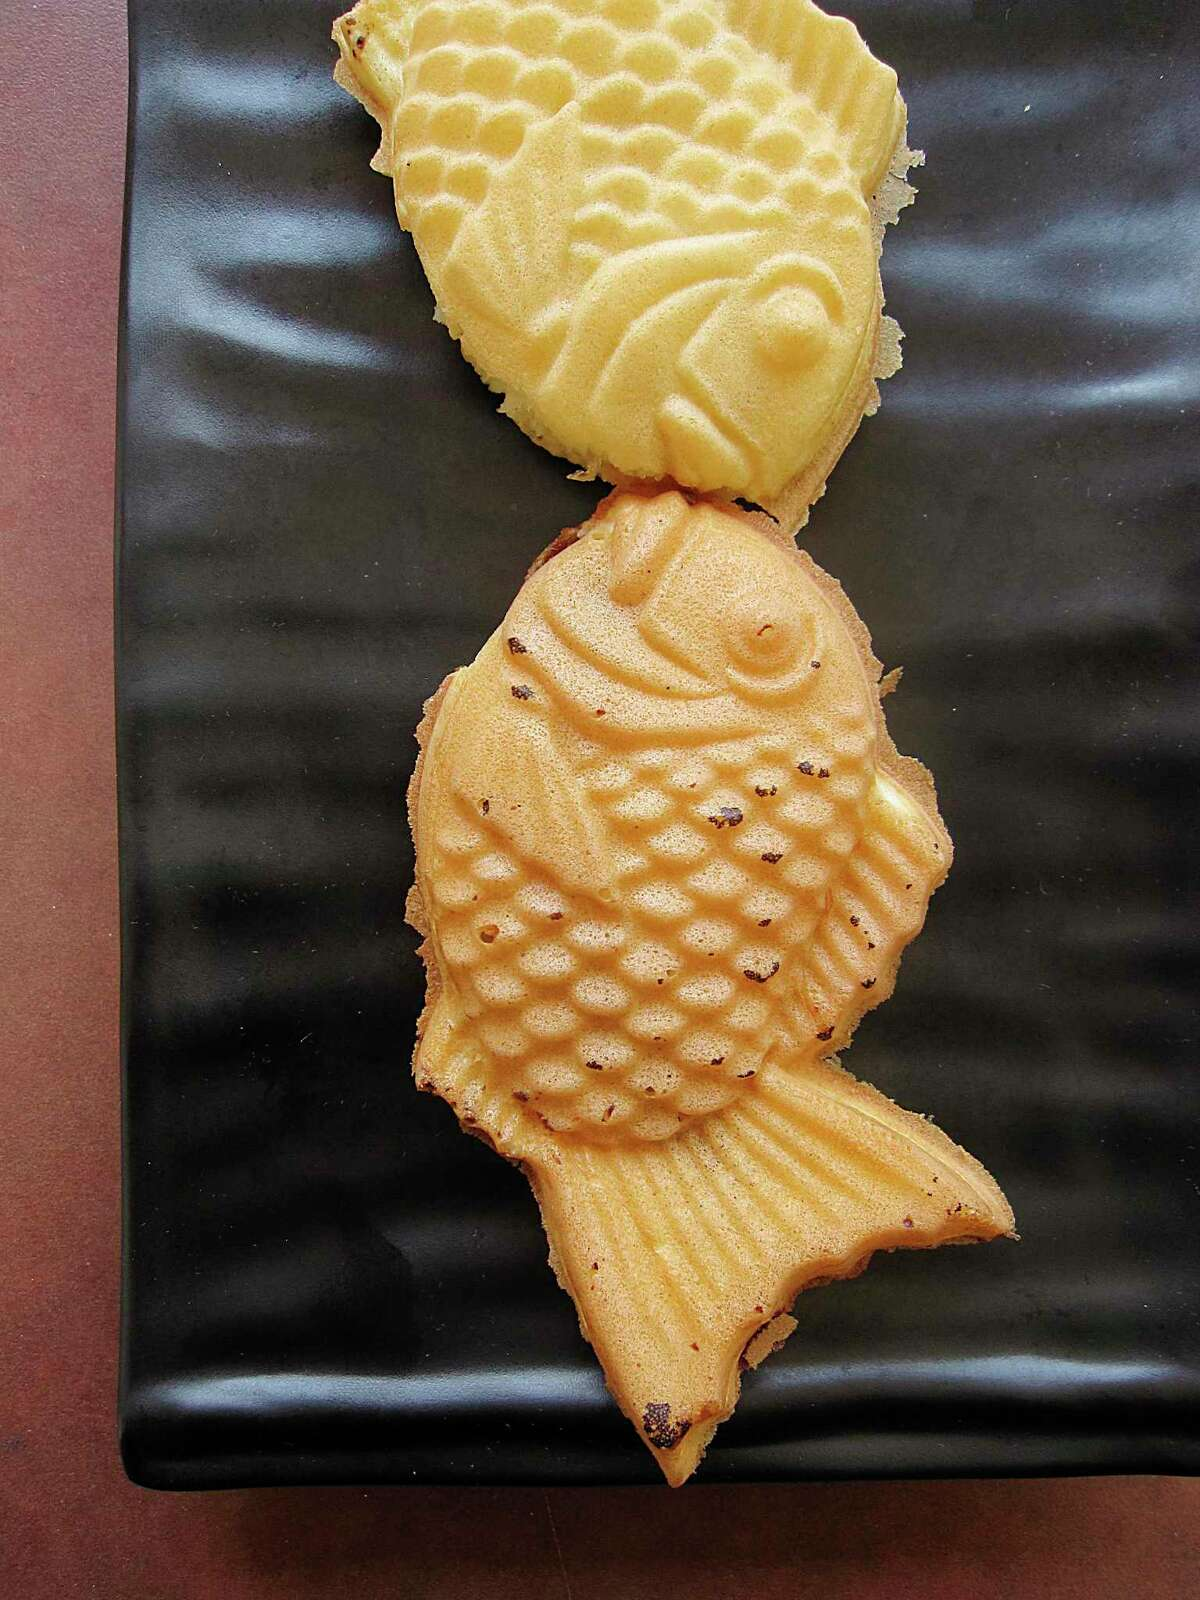 Fish-shaped cakes called taiyaki are filled with Nutella, bottom, and pineapple at Blue Whale.